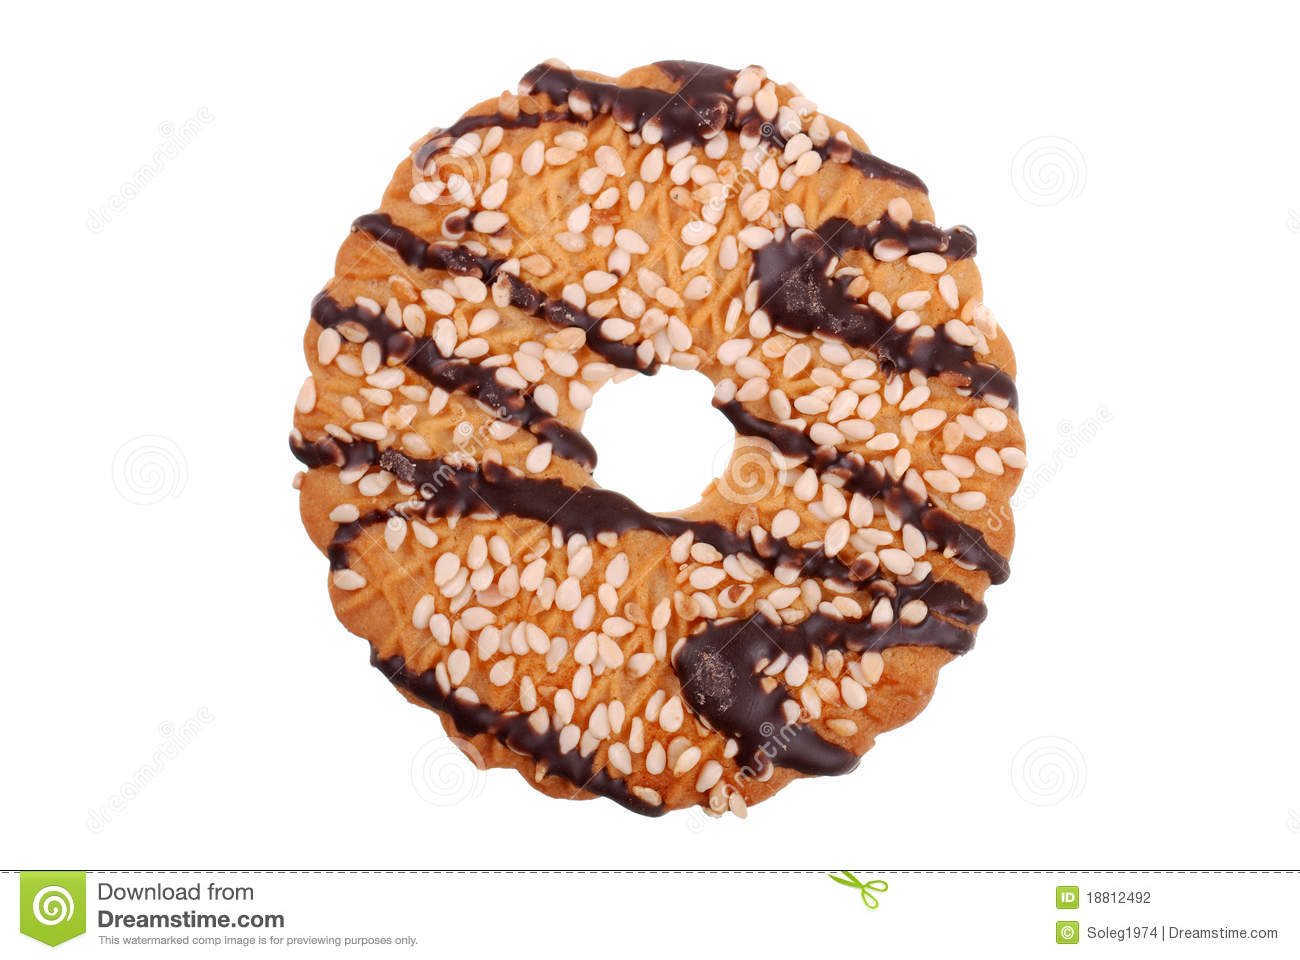 One Cookies In Chocolate Glaze Stock Photography - Image: 18812492